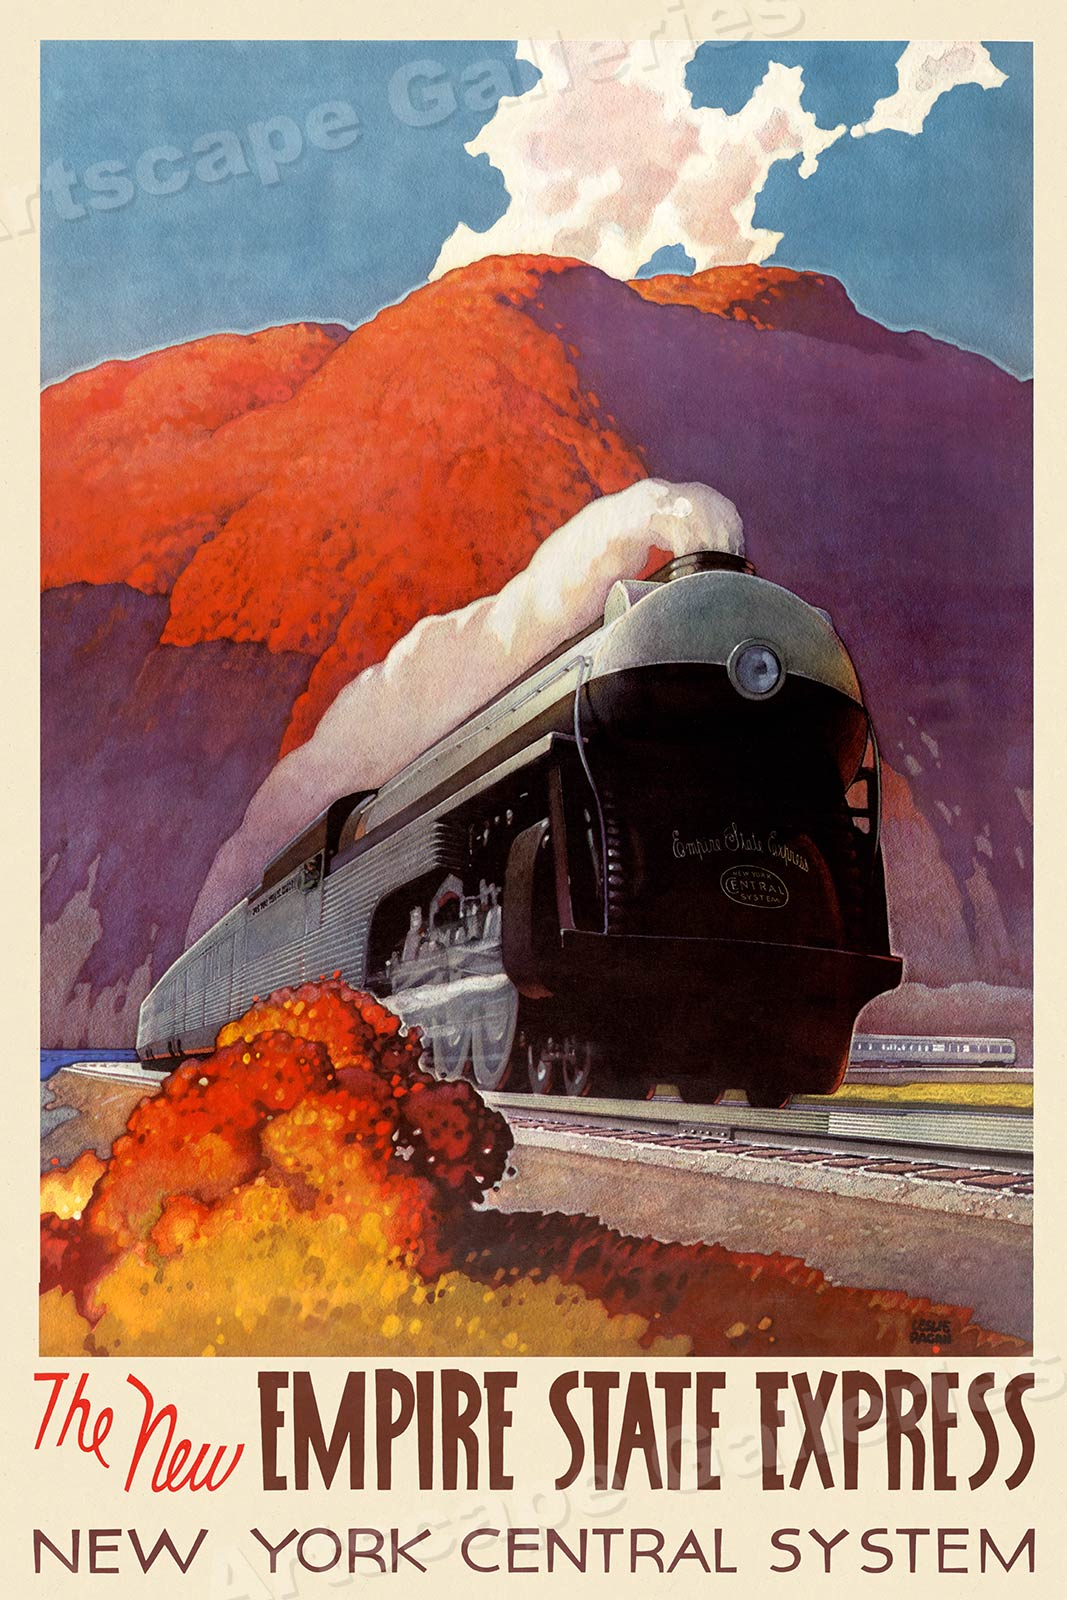 16x24 NY Empire State Express 1940s Vintage Style Railroad Travel Poster